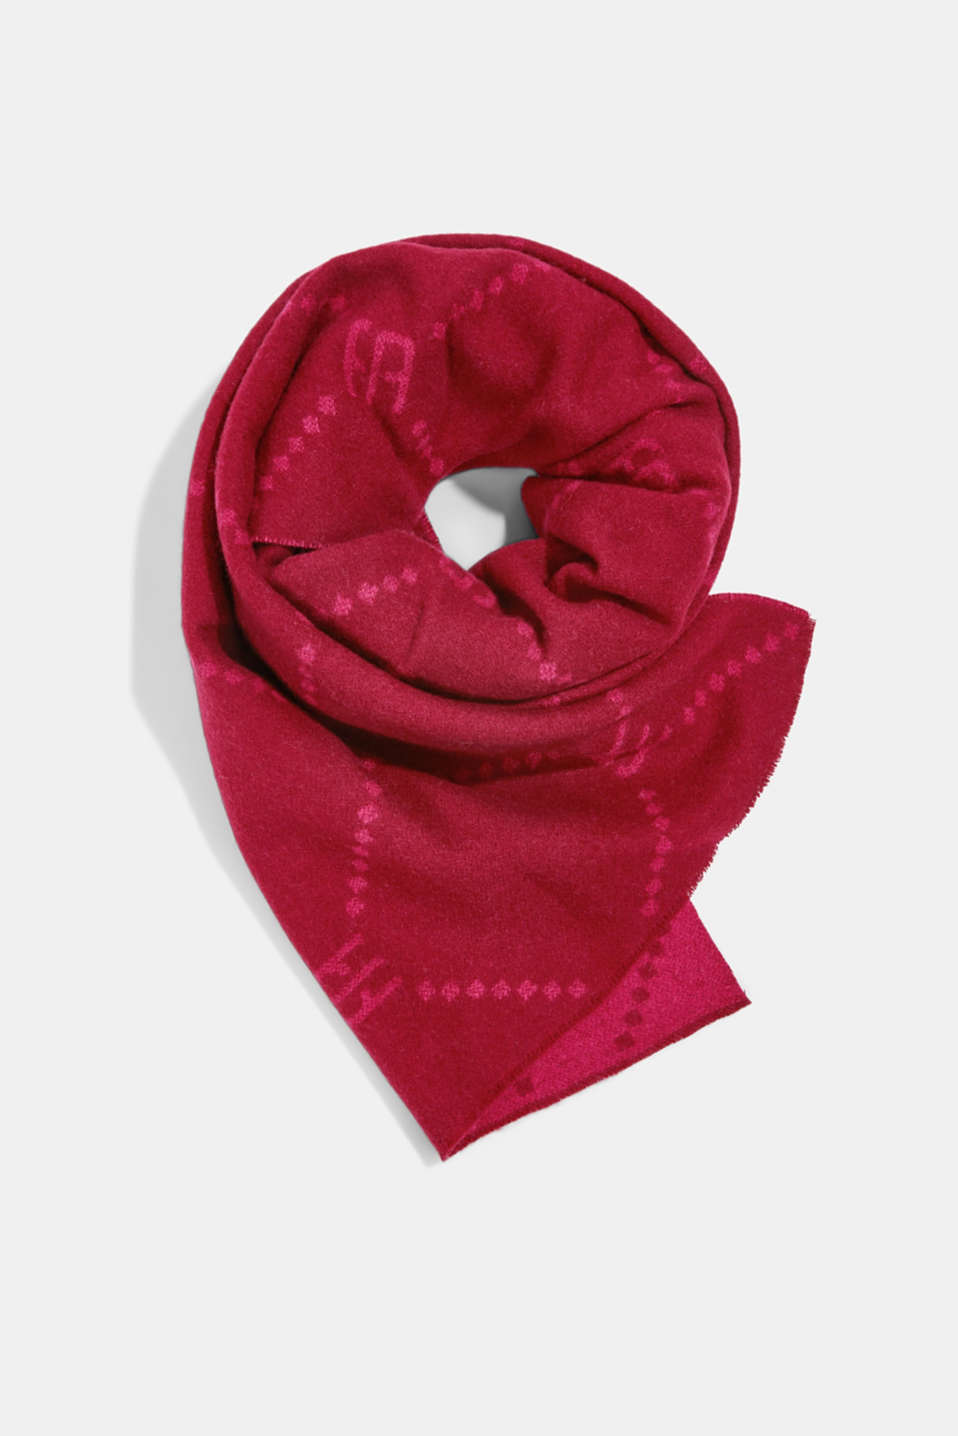 Esprit - Made of wool/cashmere: monogram scarf